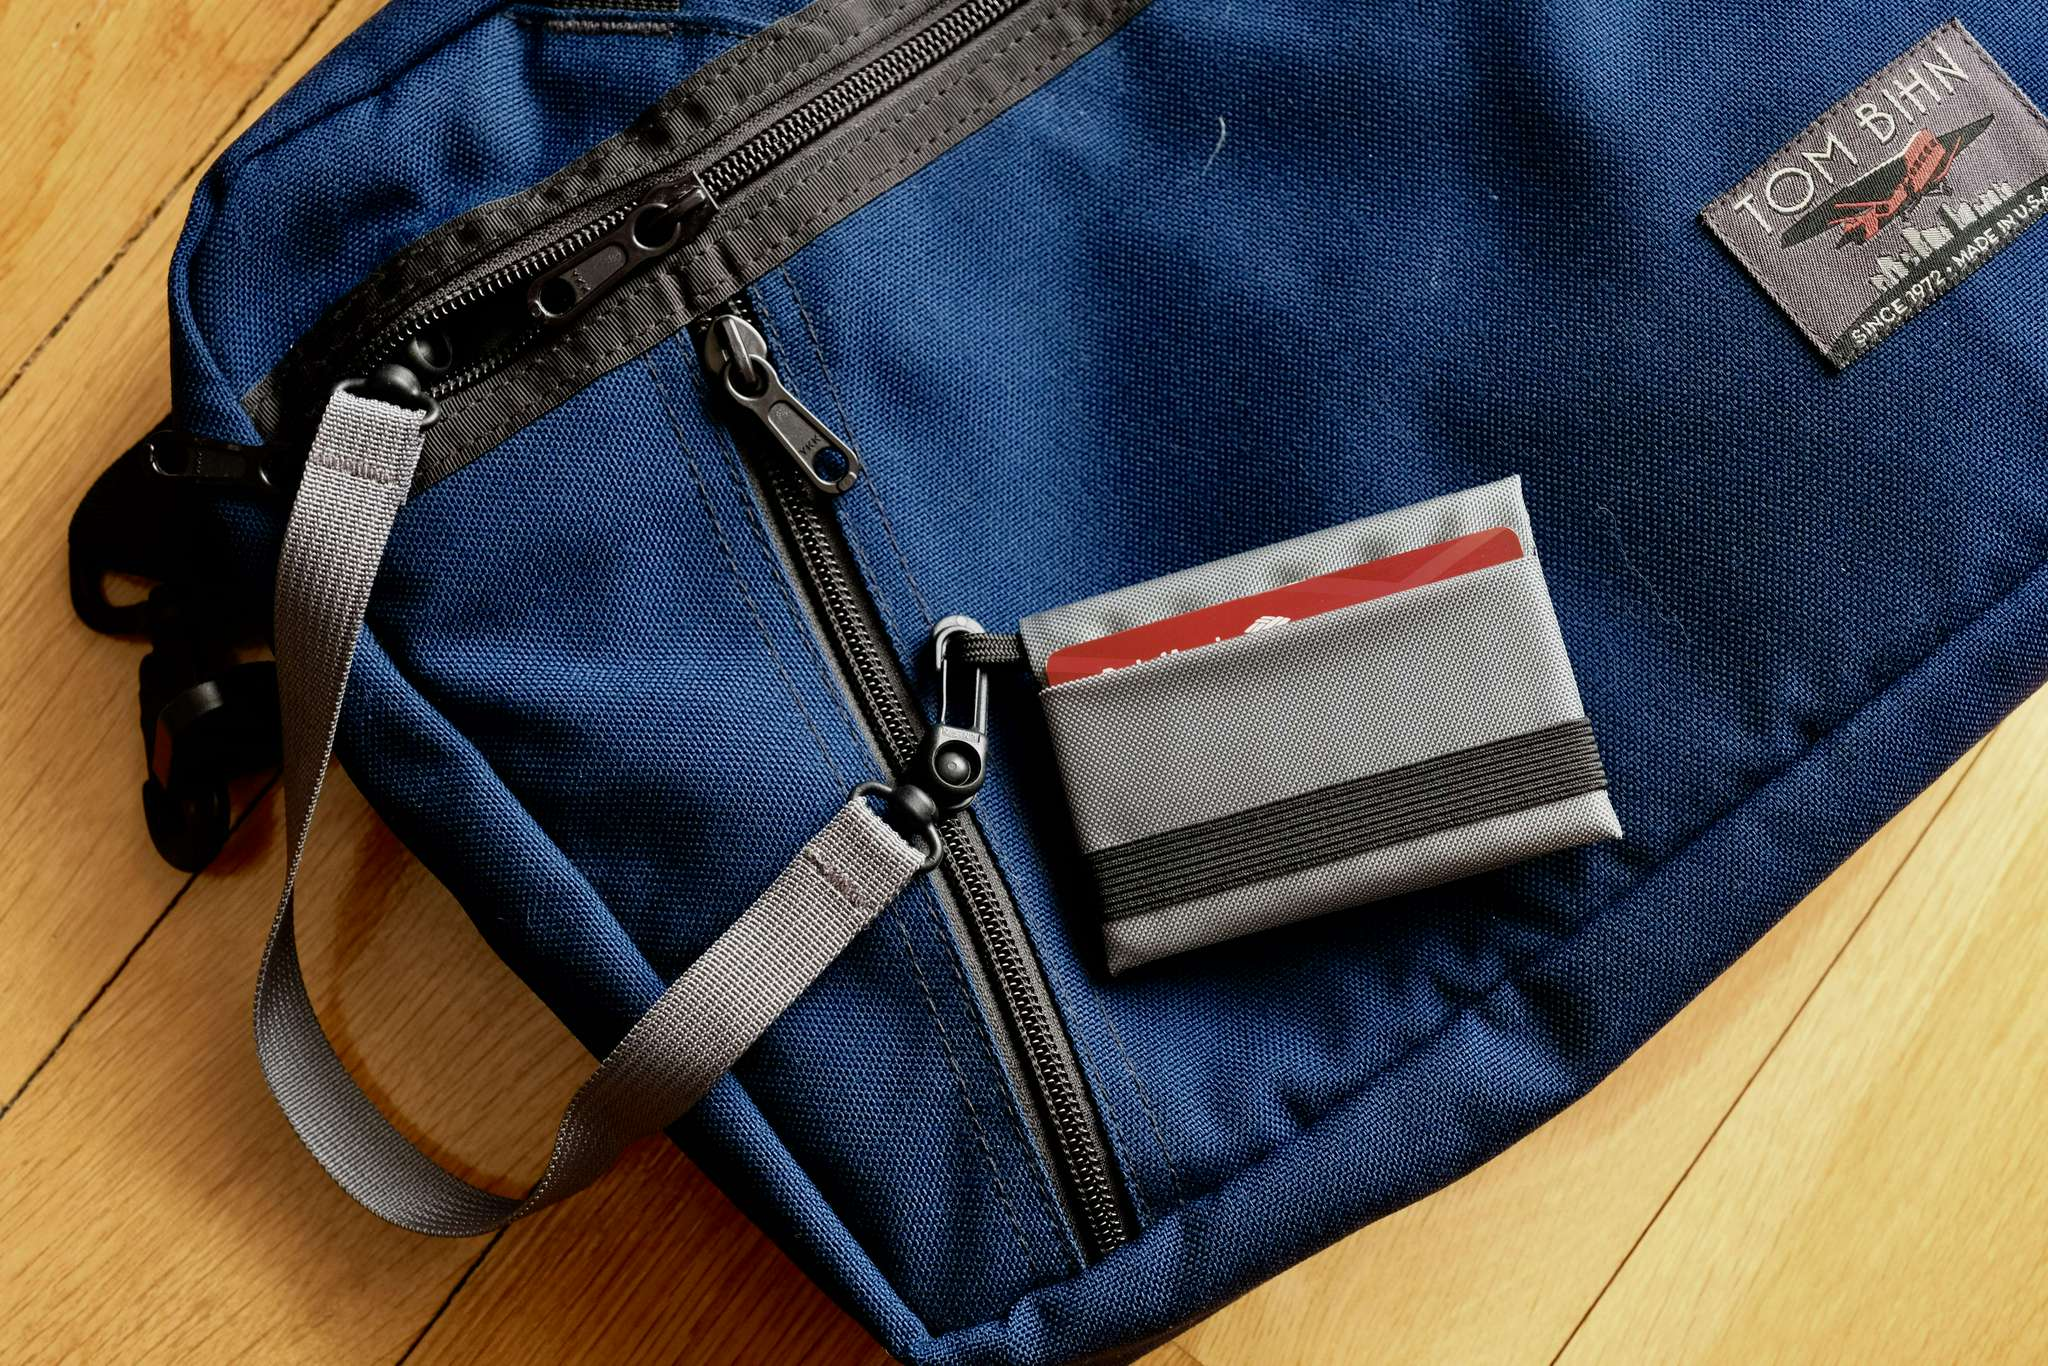 Wallet #4 can be attached to a bag